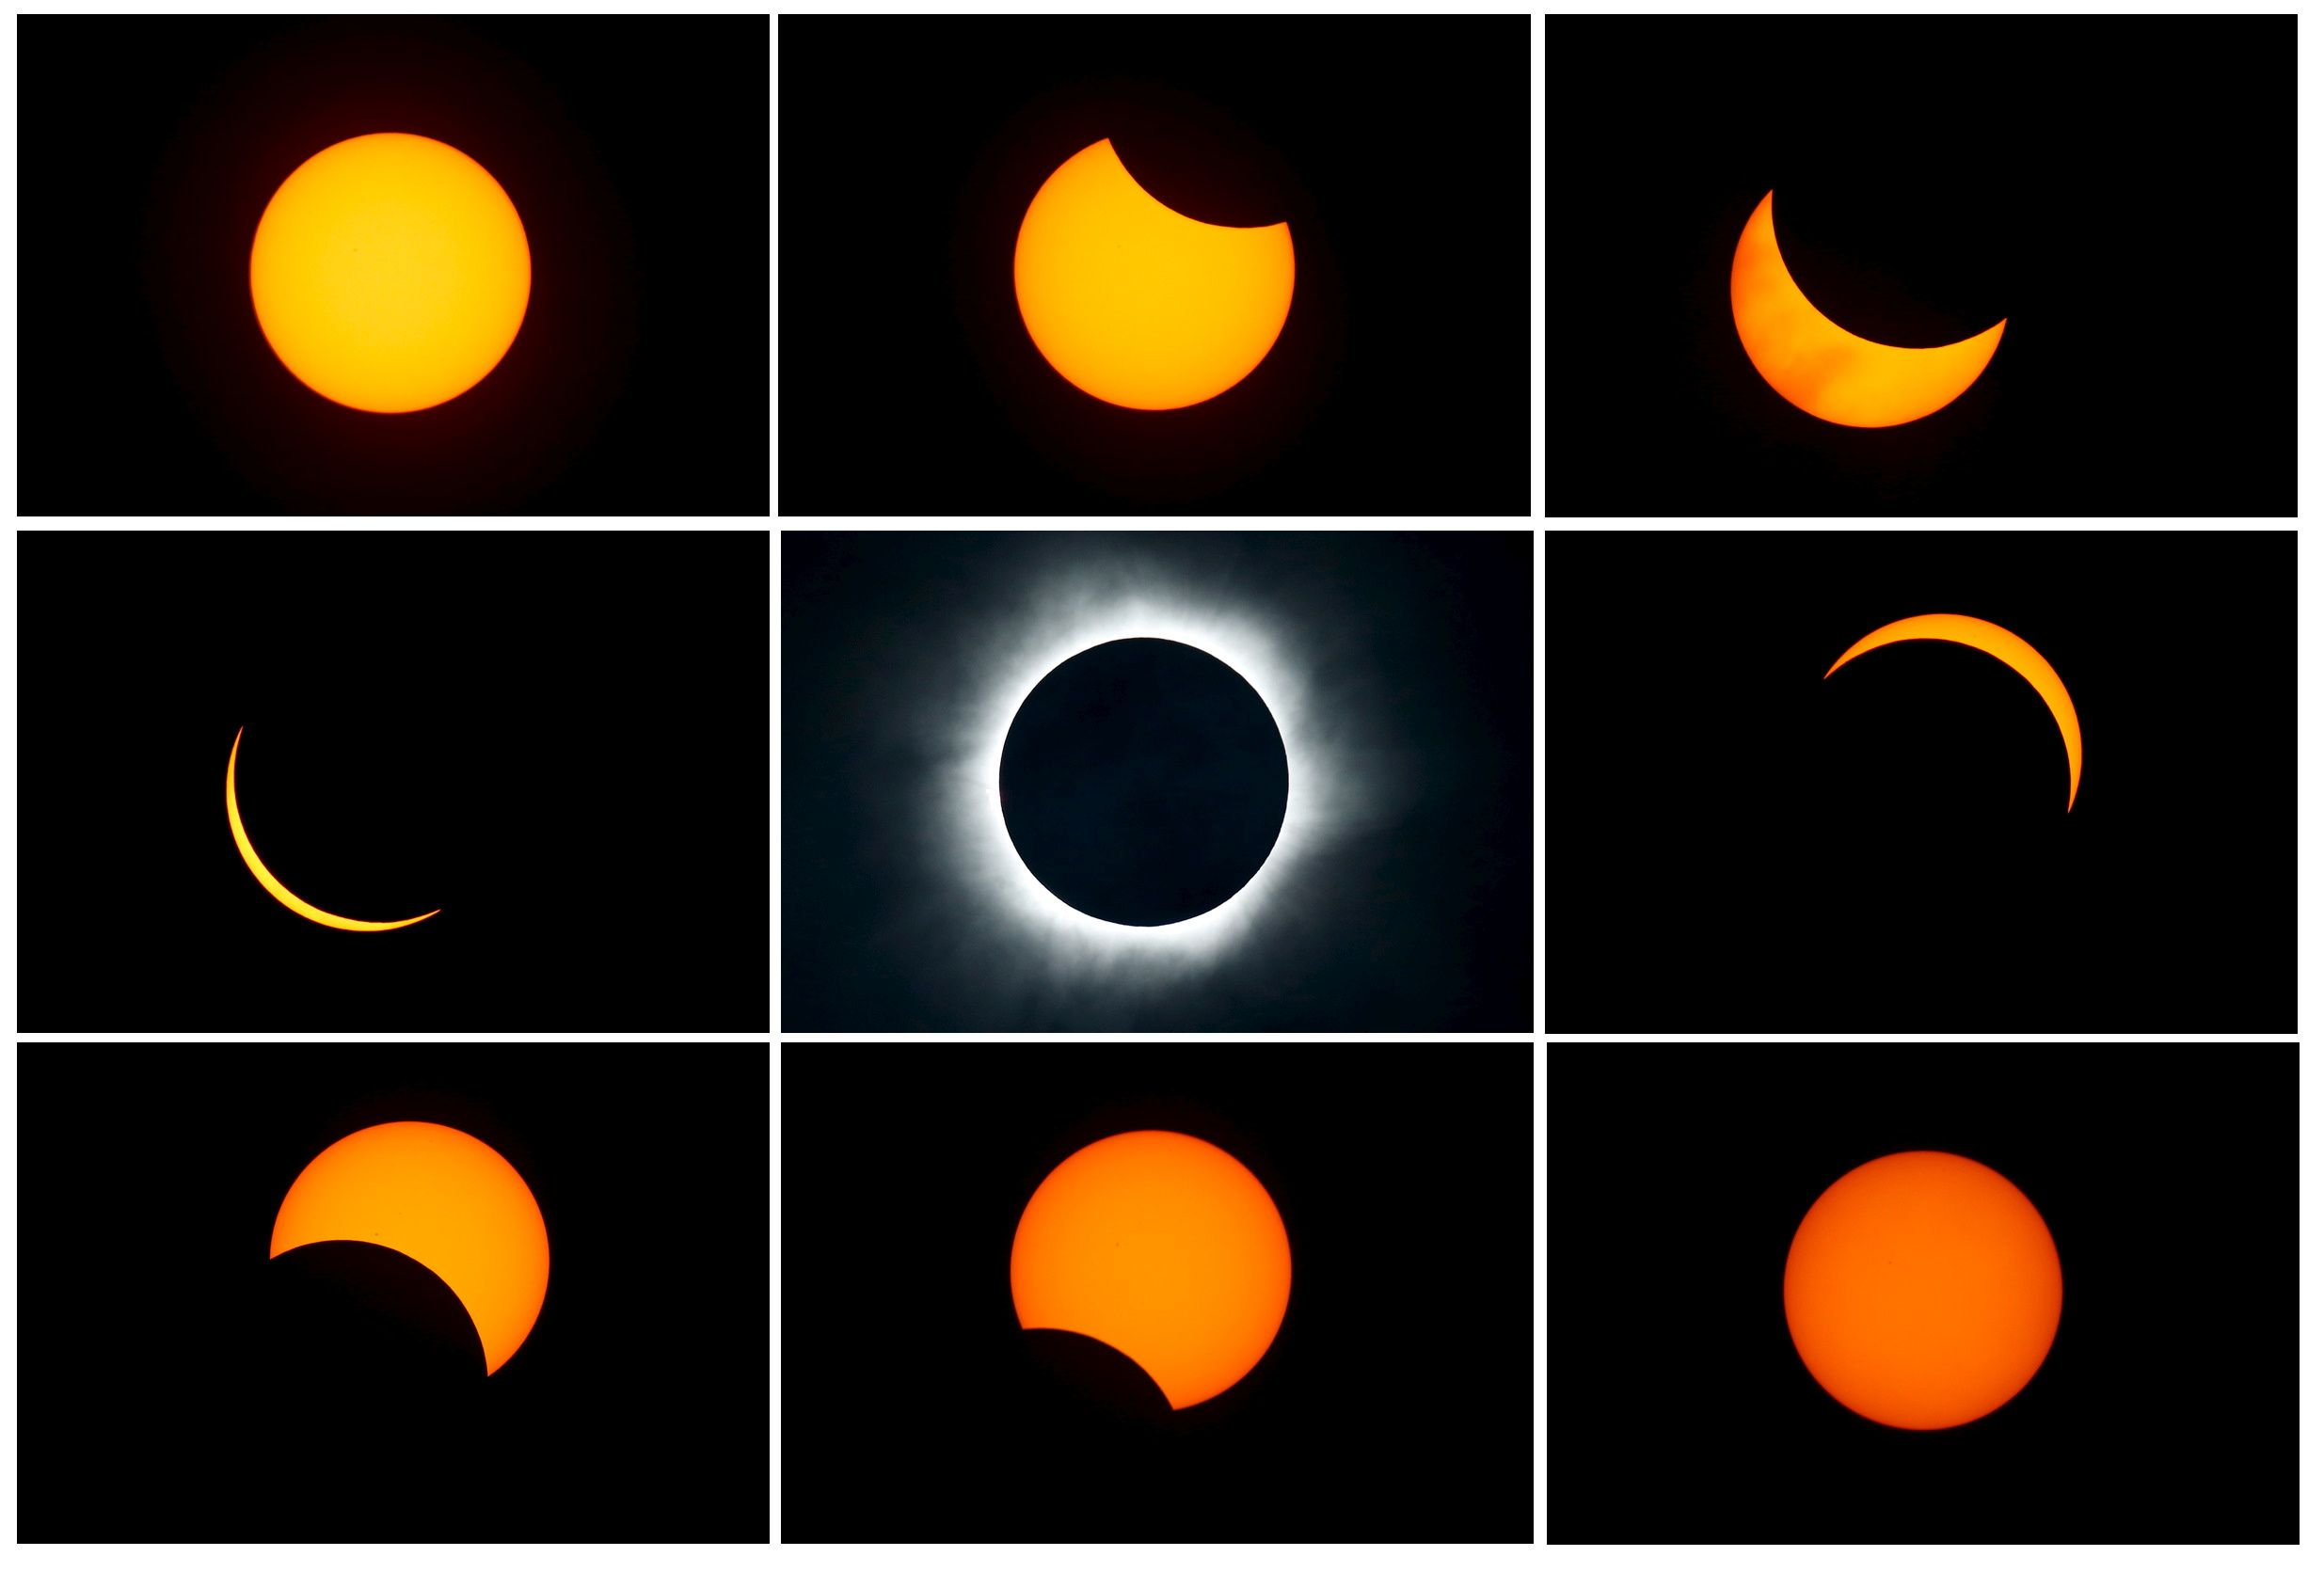 Total Solar Eclipse Viewing 2017: Where to Buy Glasses and ...